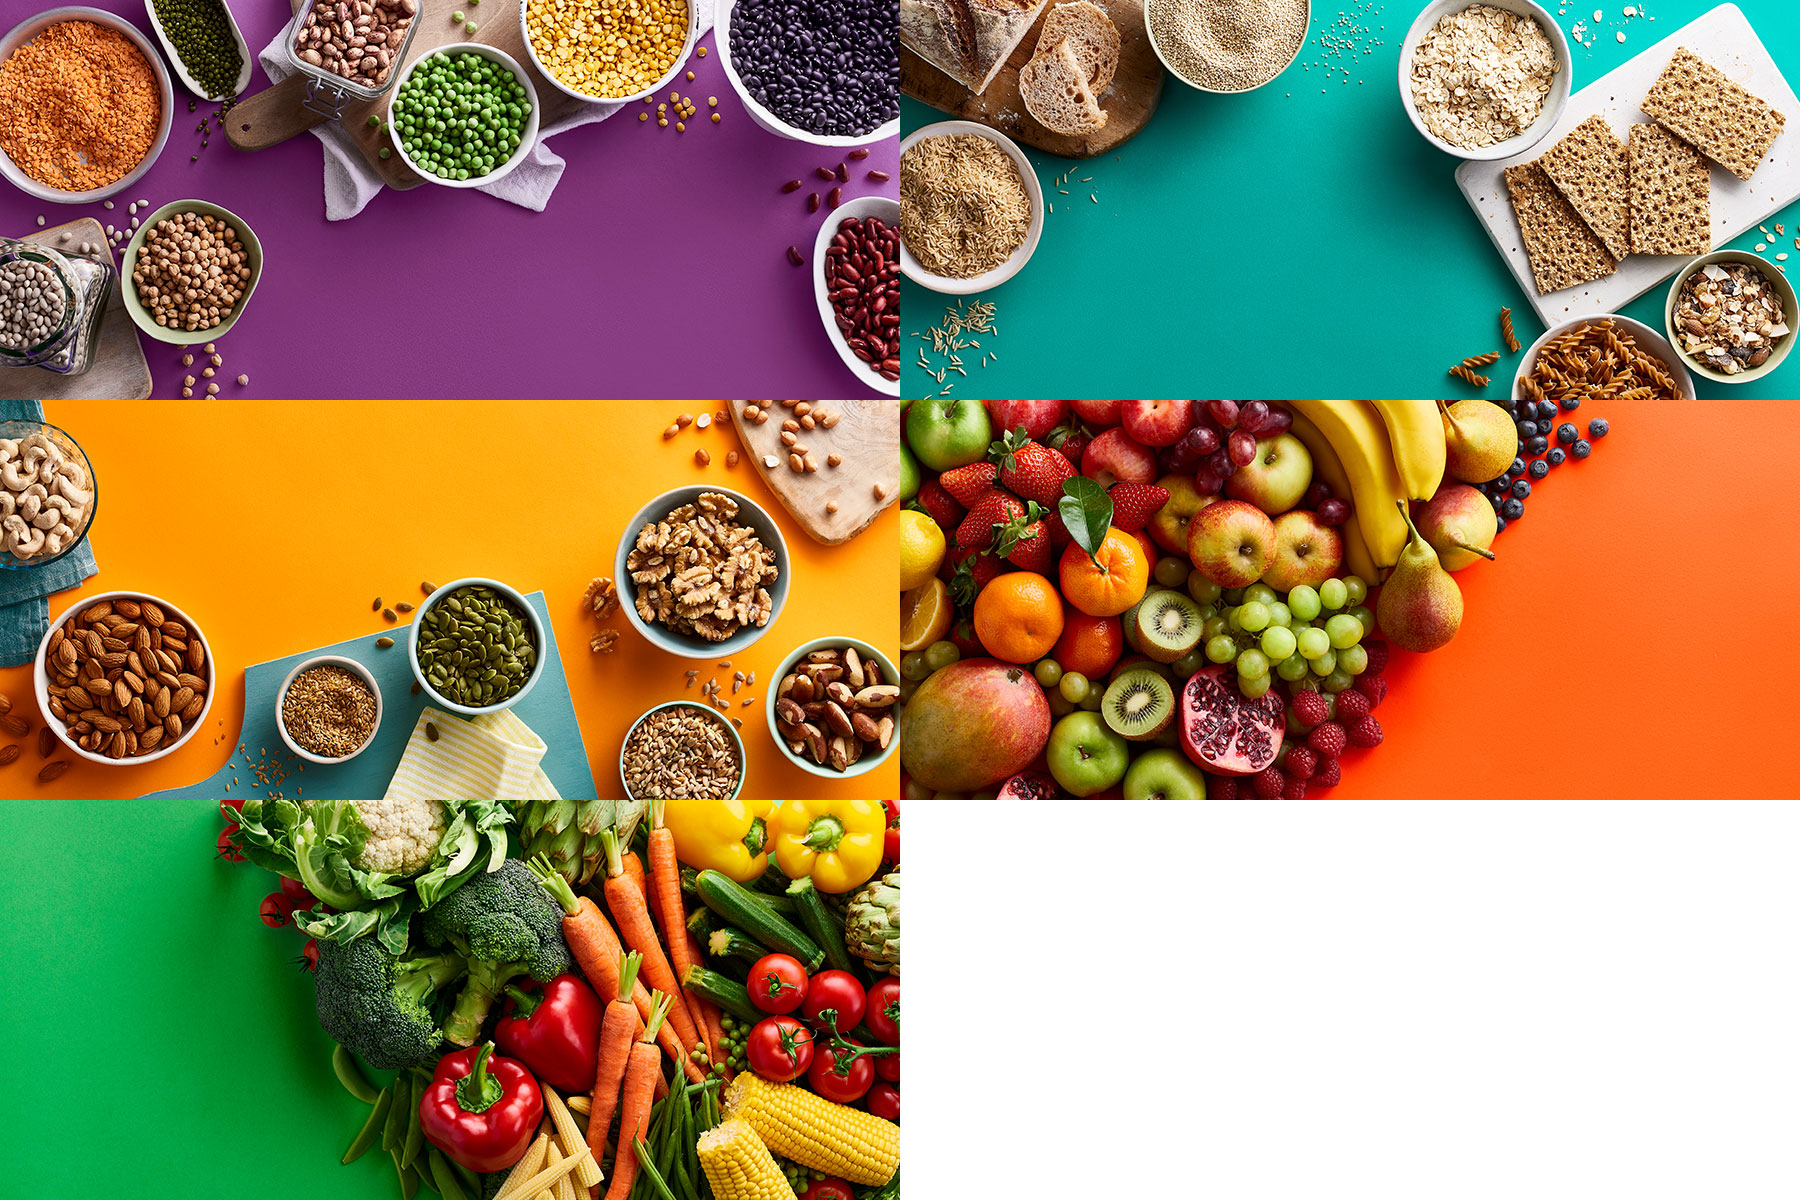 Ryvita Fibre Fit ingredients shots